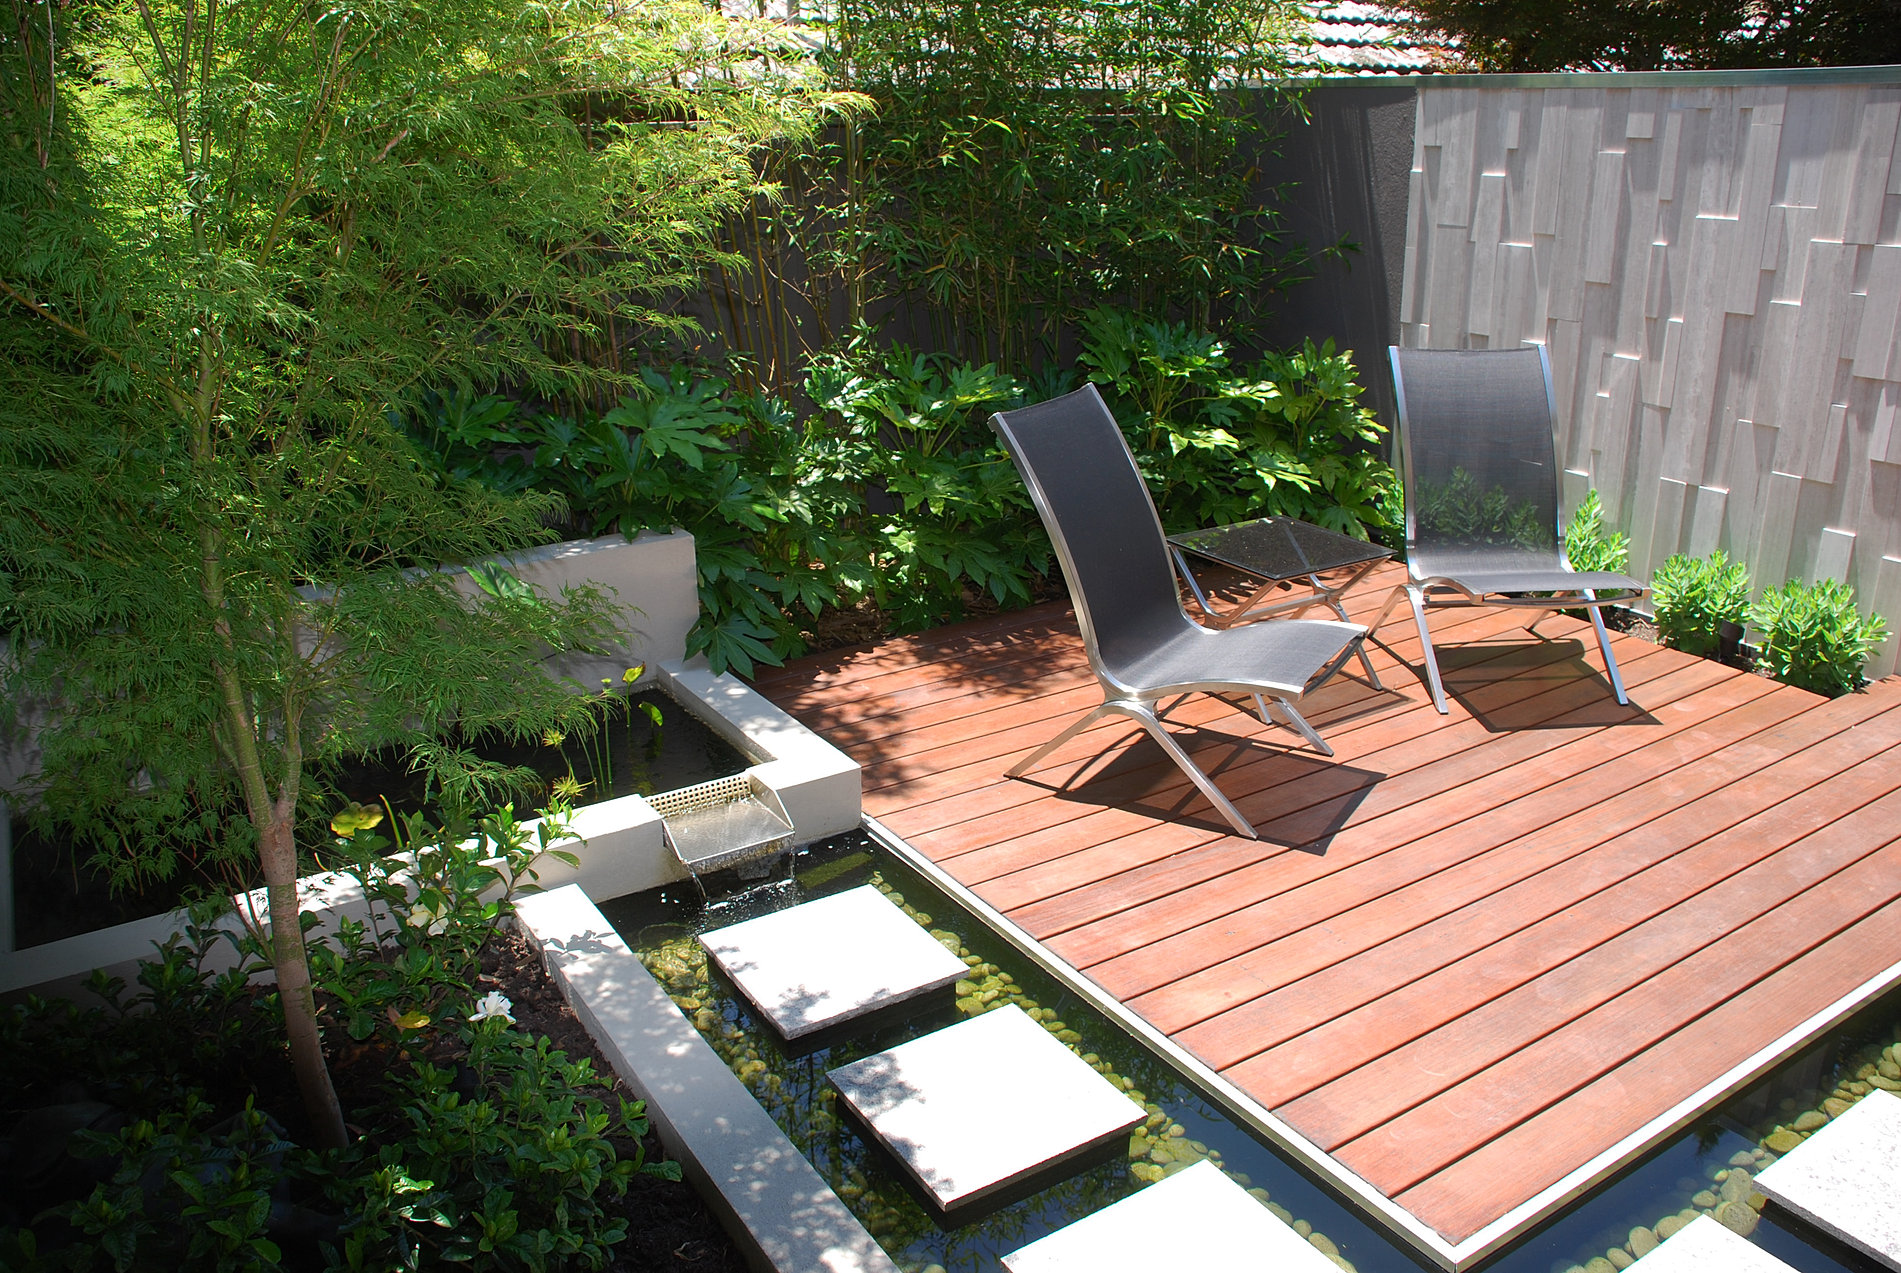 Landscaping melbourne melbourne landscape design for Garden designs melbourne